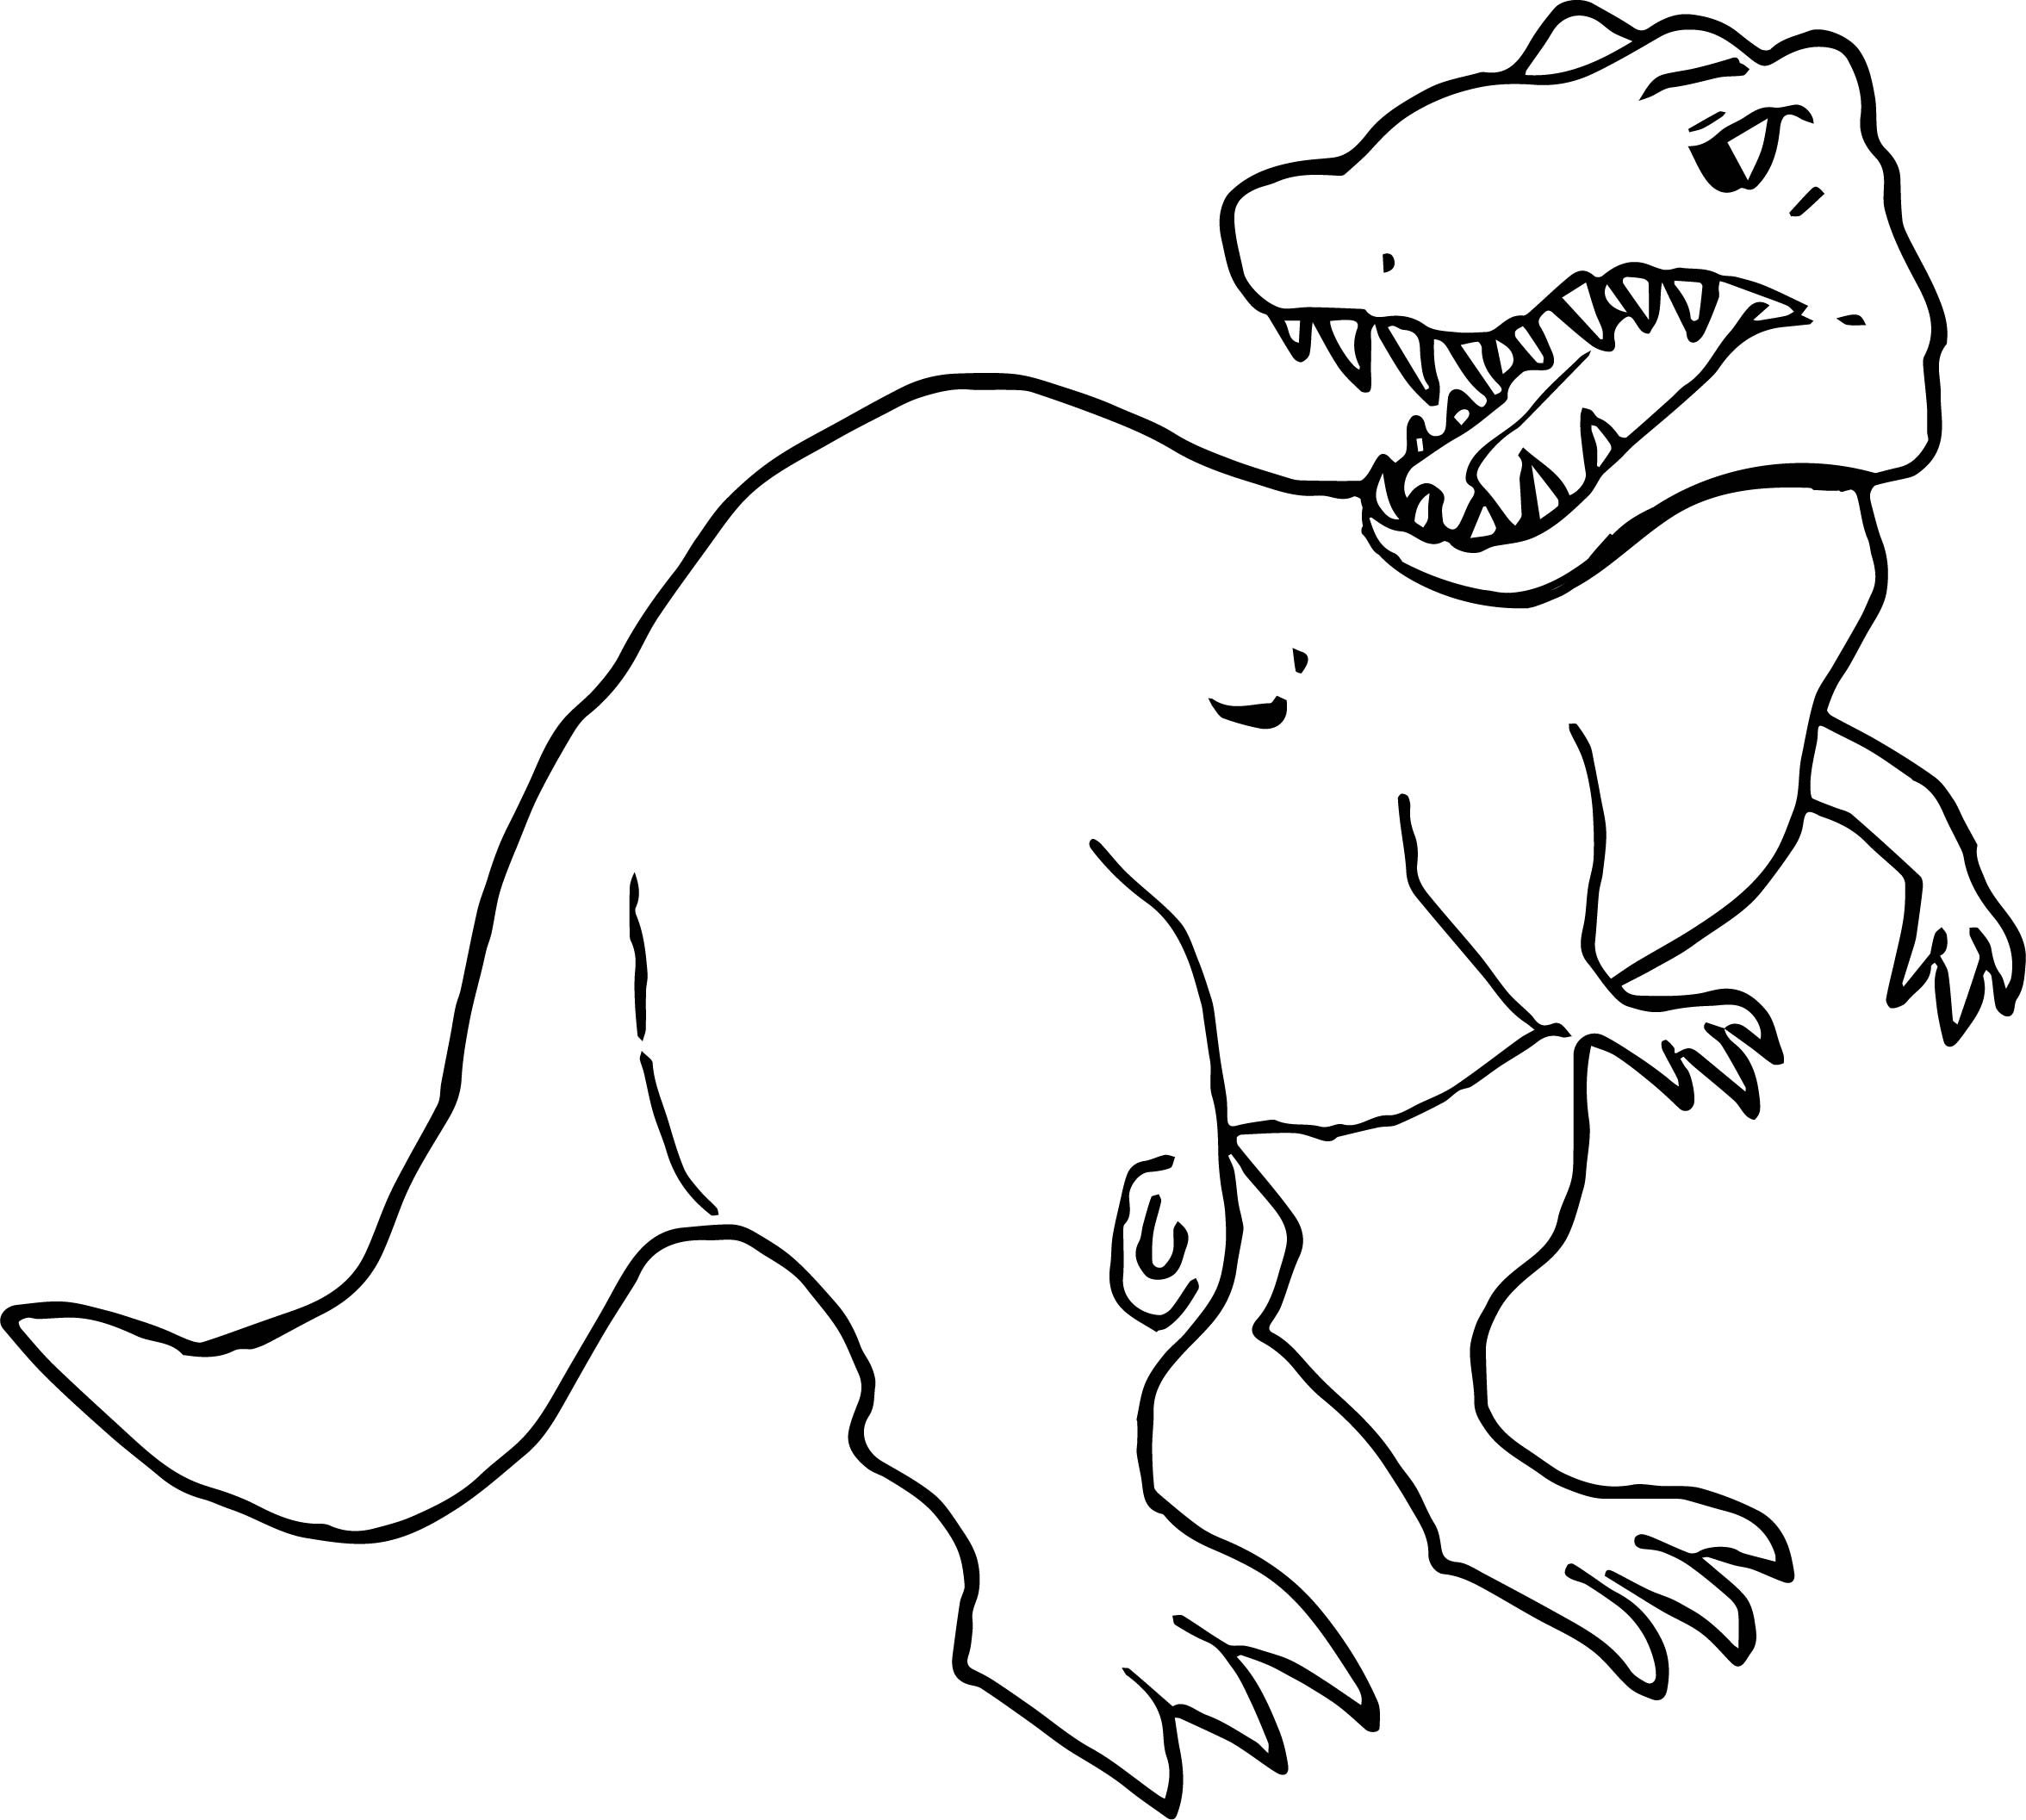 T Rex Cartoon Drawing at GetDrawings.com | Free for personal use T ...